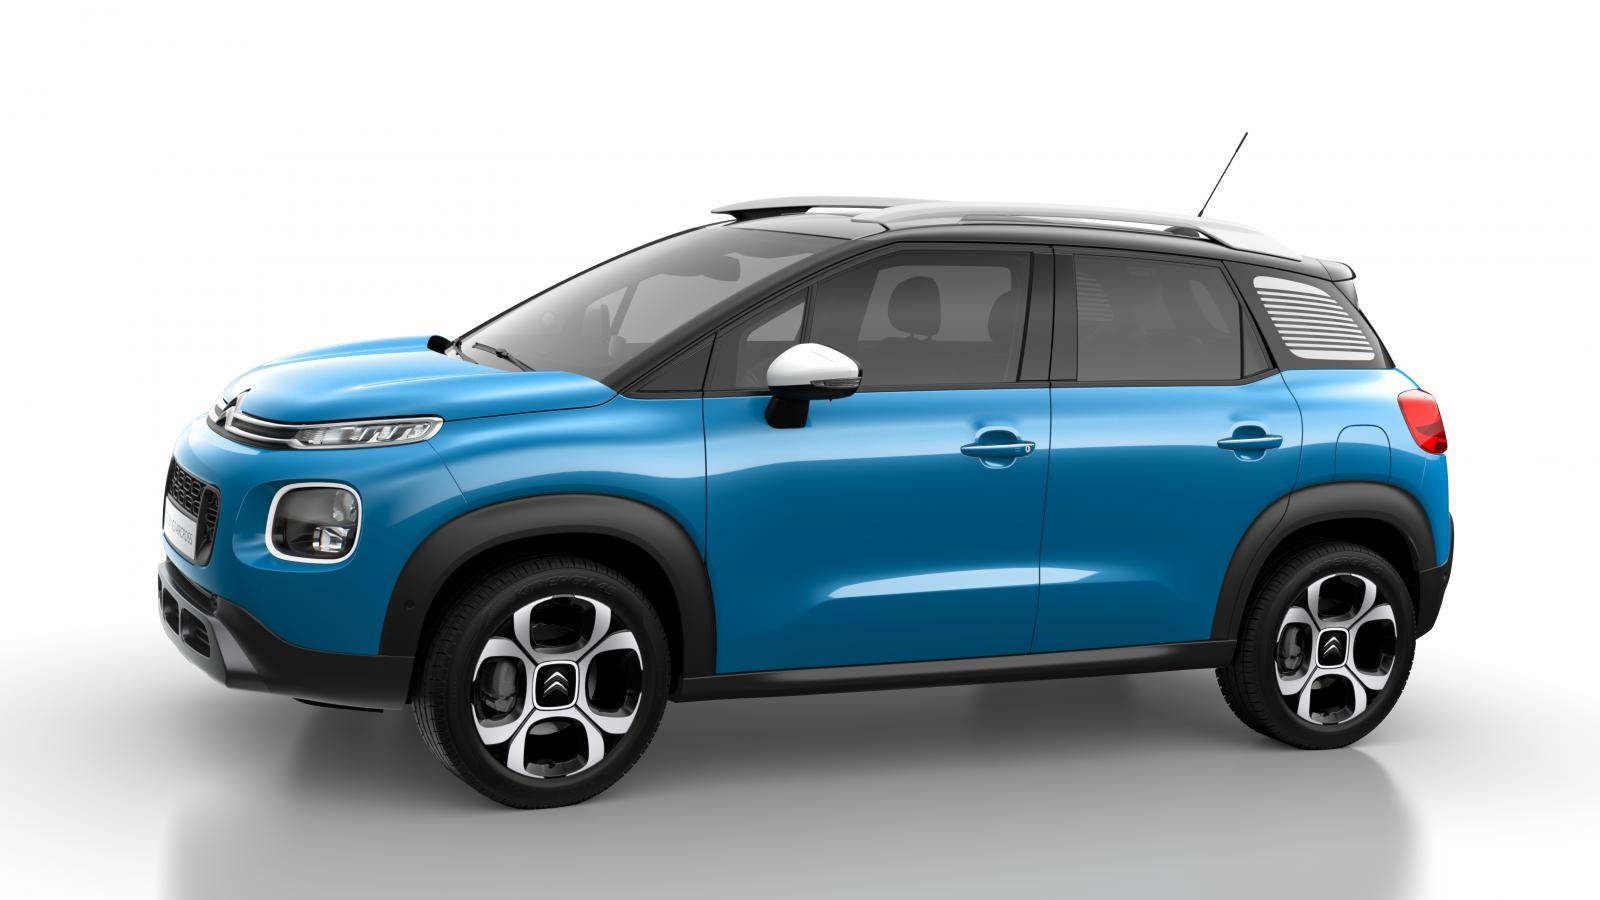 C3 Aircross Compact SUV - Breathing Blue